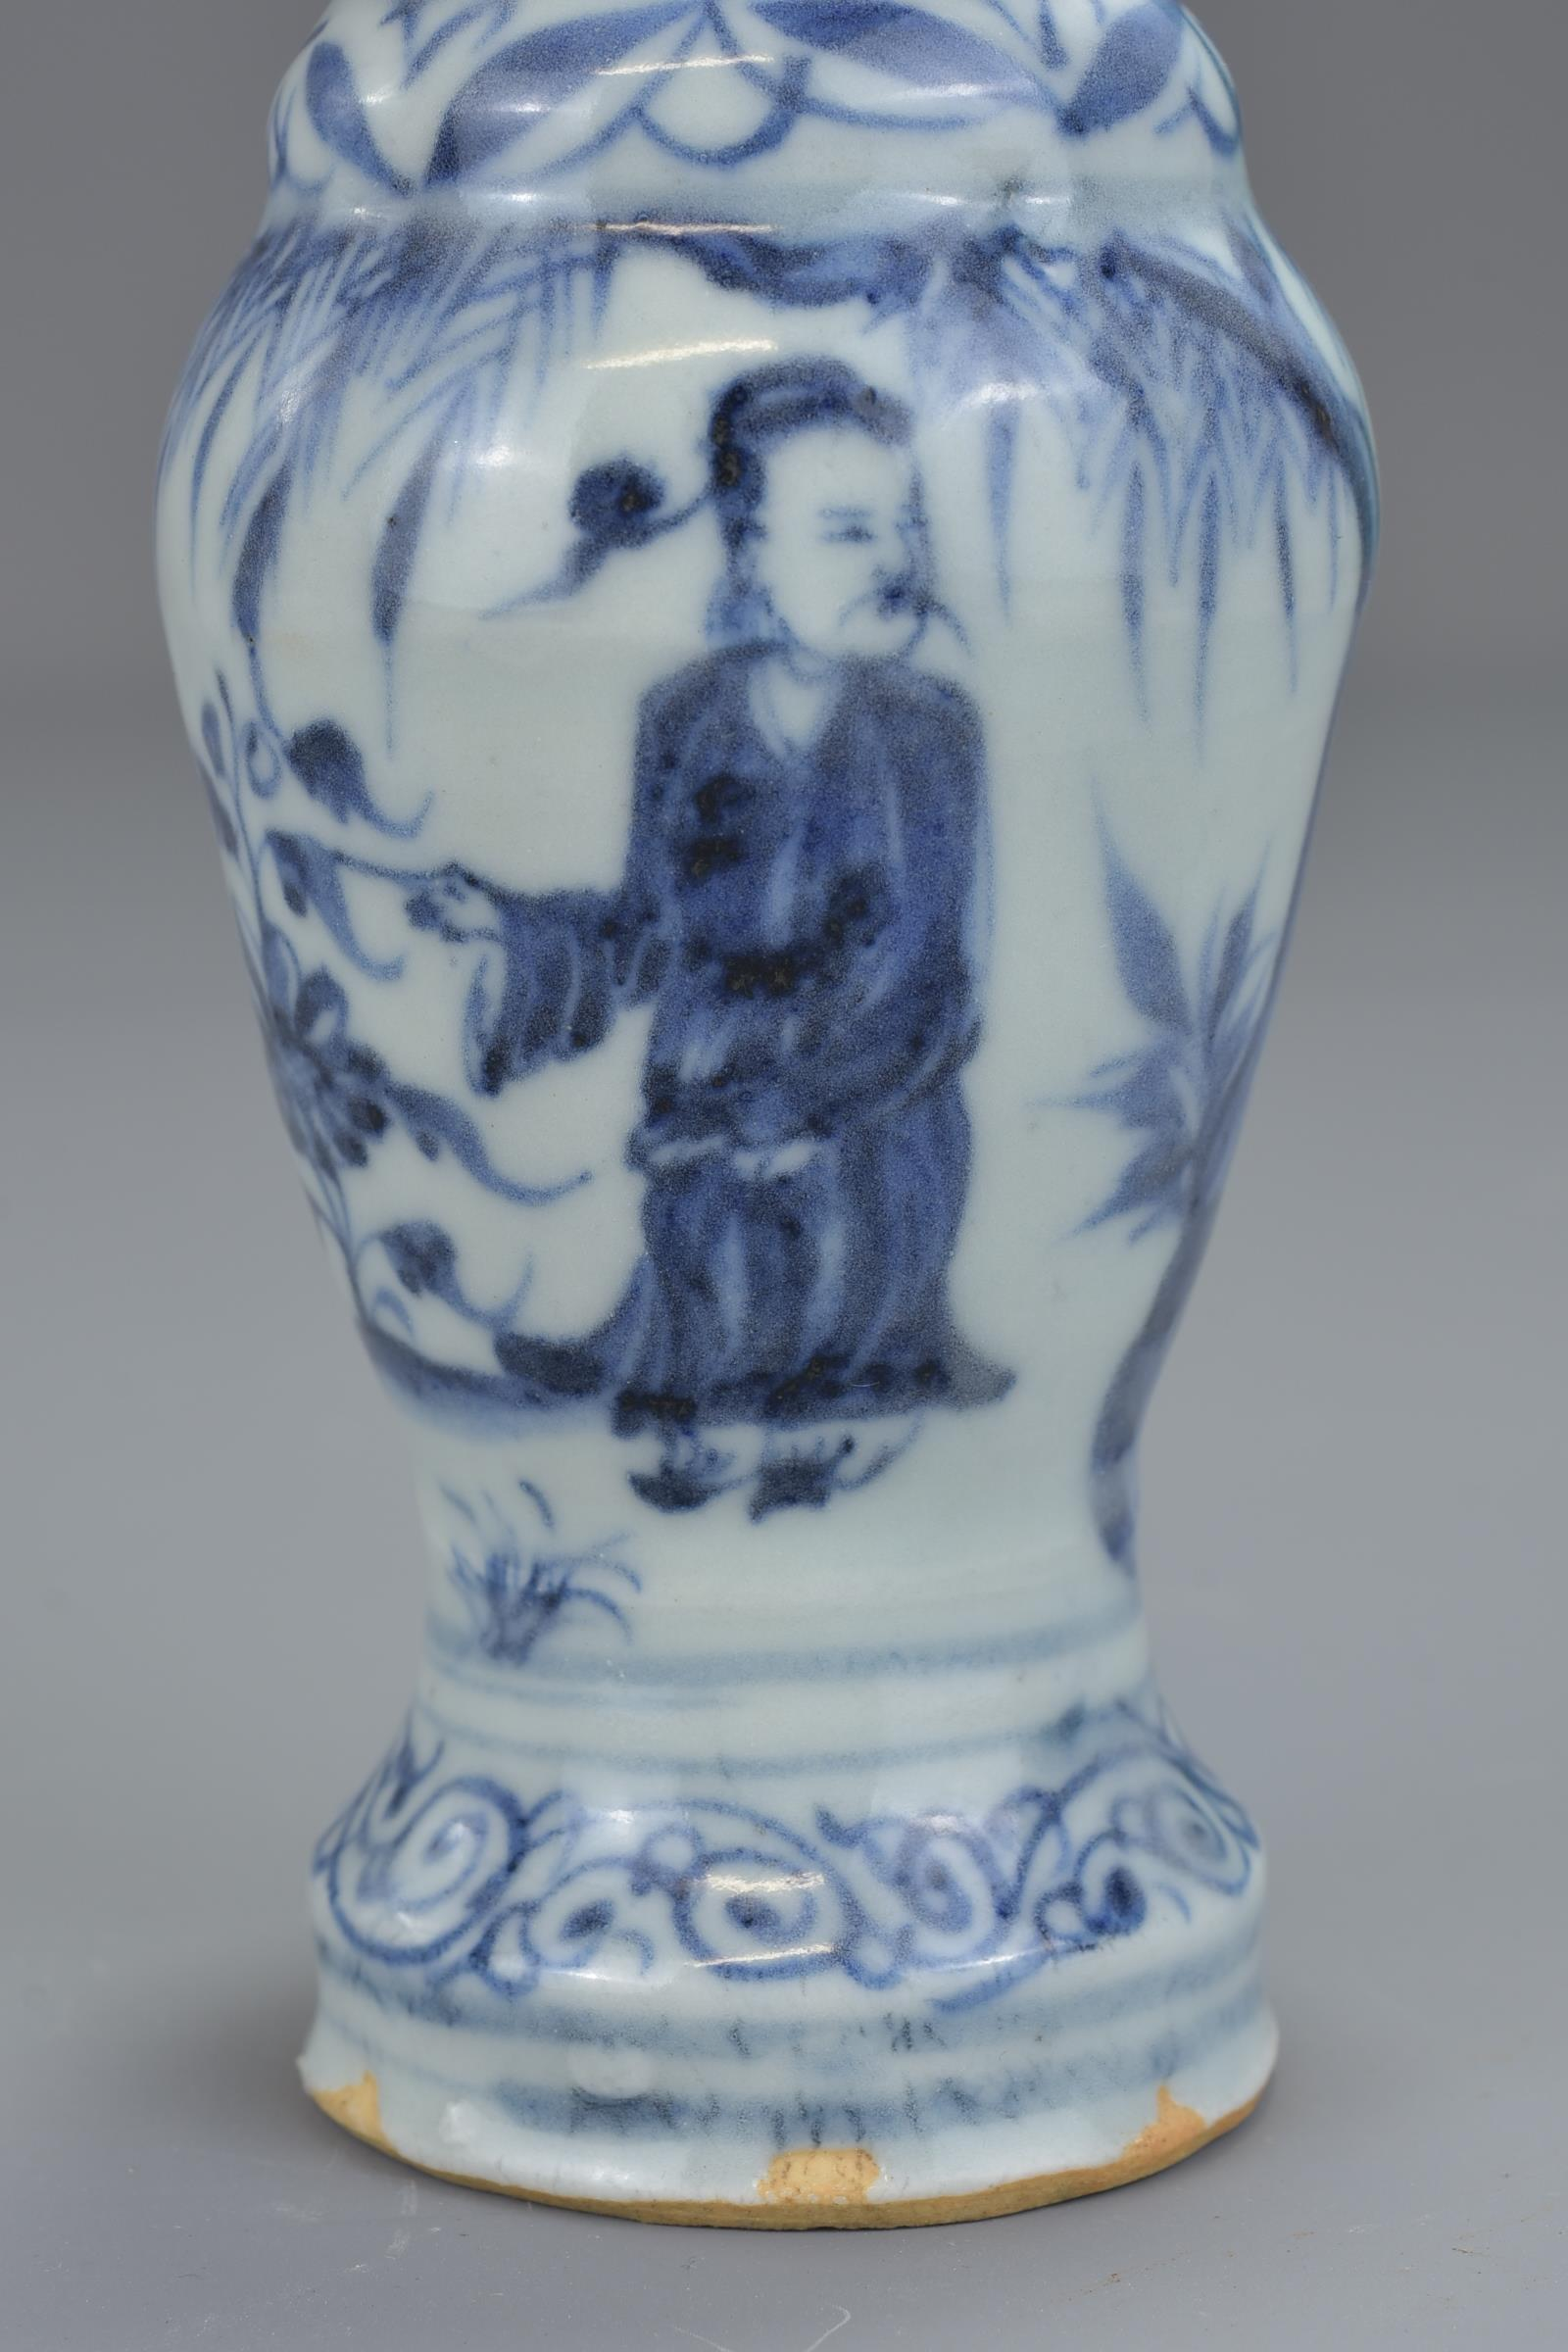 Lot 51 - A Chinese 17th century Ming dynasty blue and white porcelain vase with twin handles decorated with f